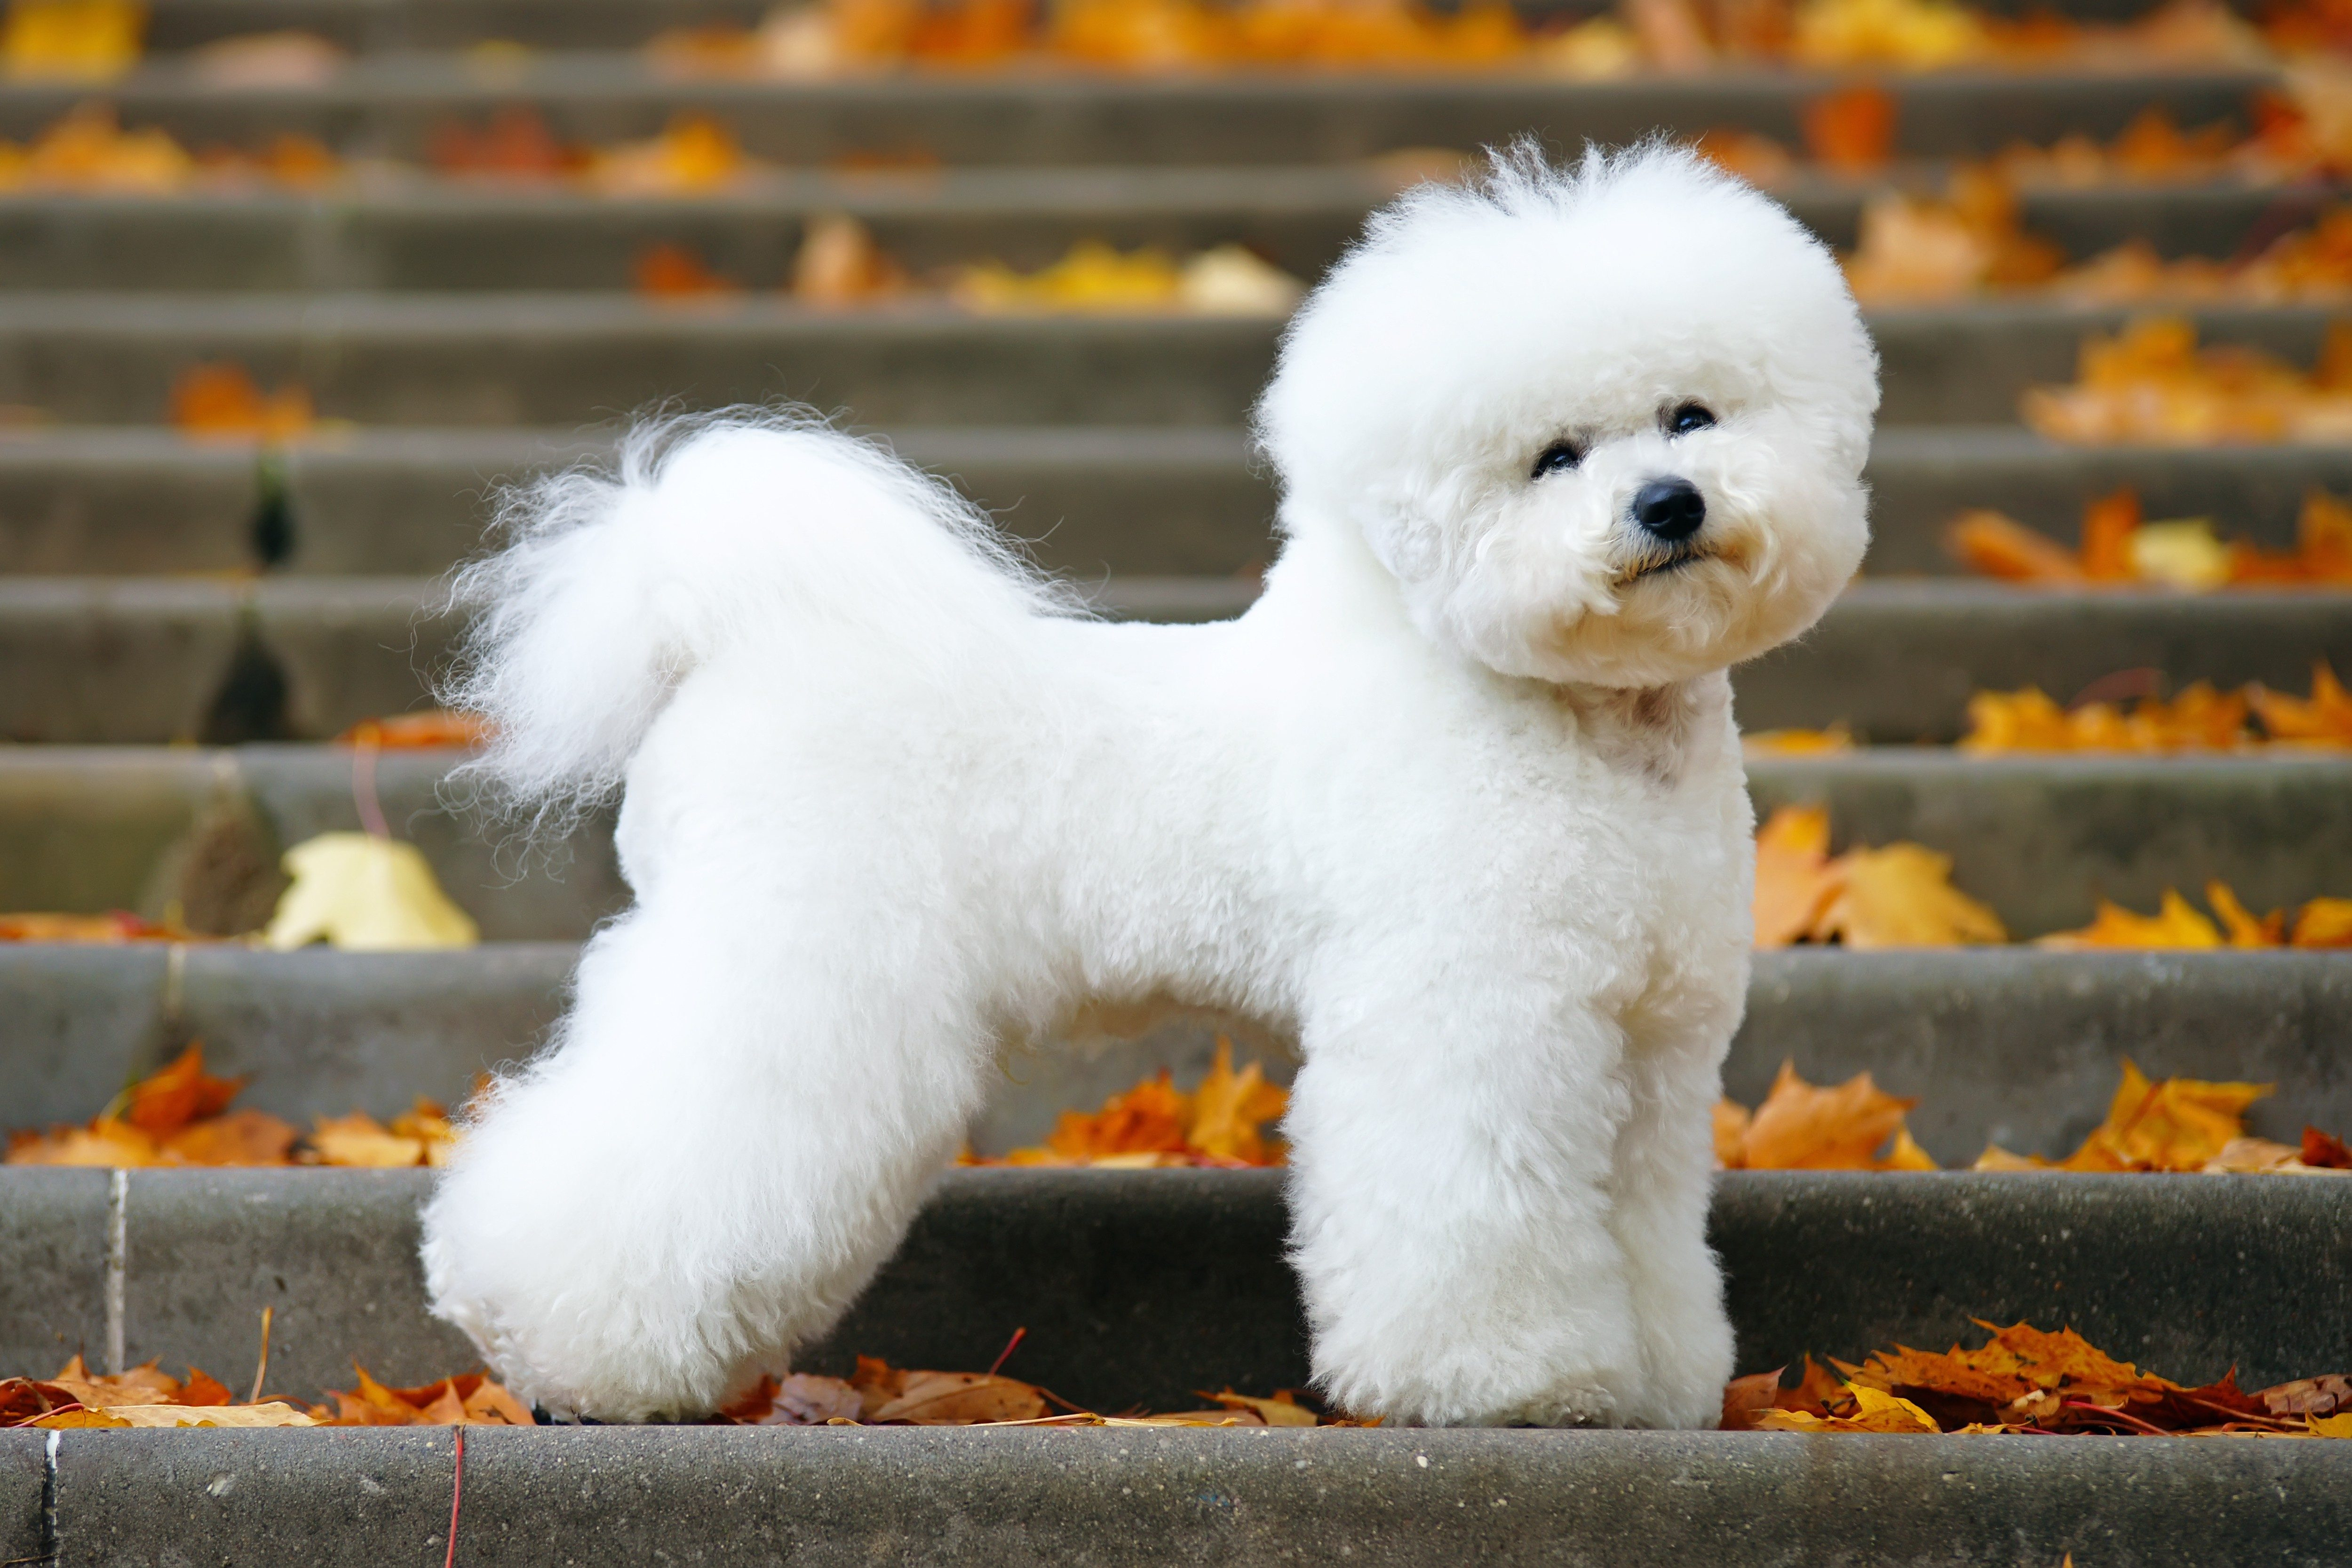 Adorable Bichon Frise dog with a stylish haircut staying on the stairs in autumn park